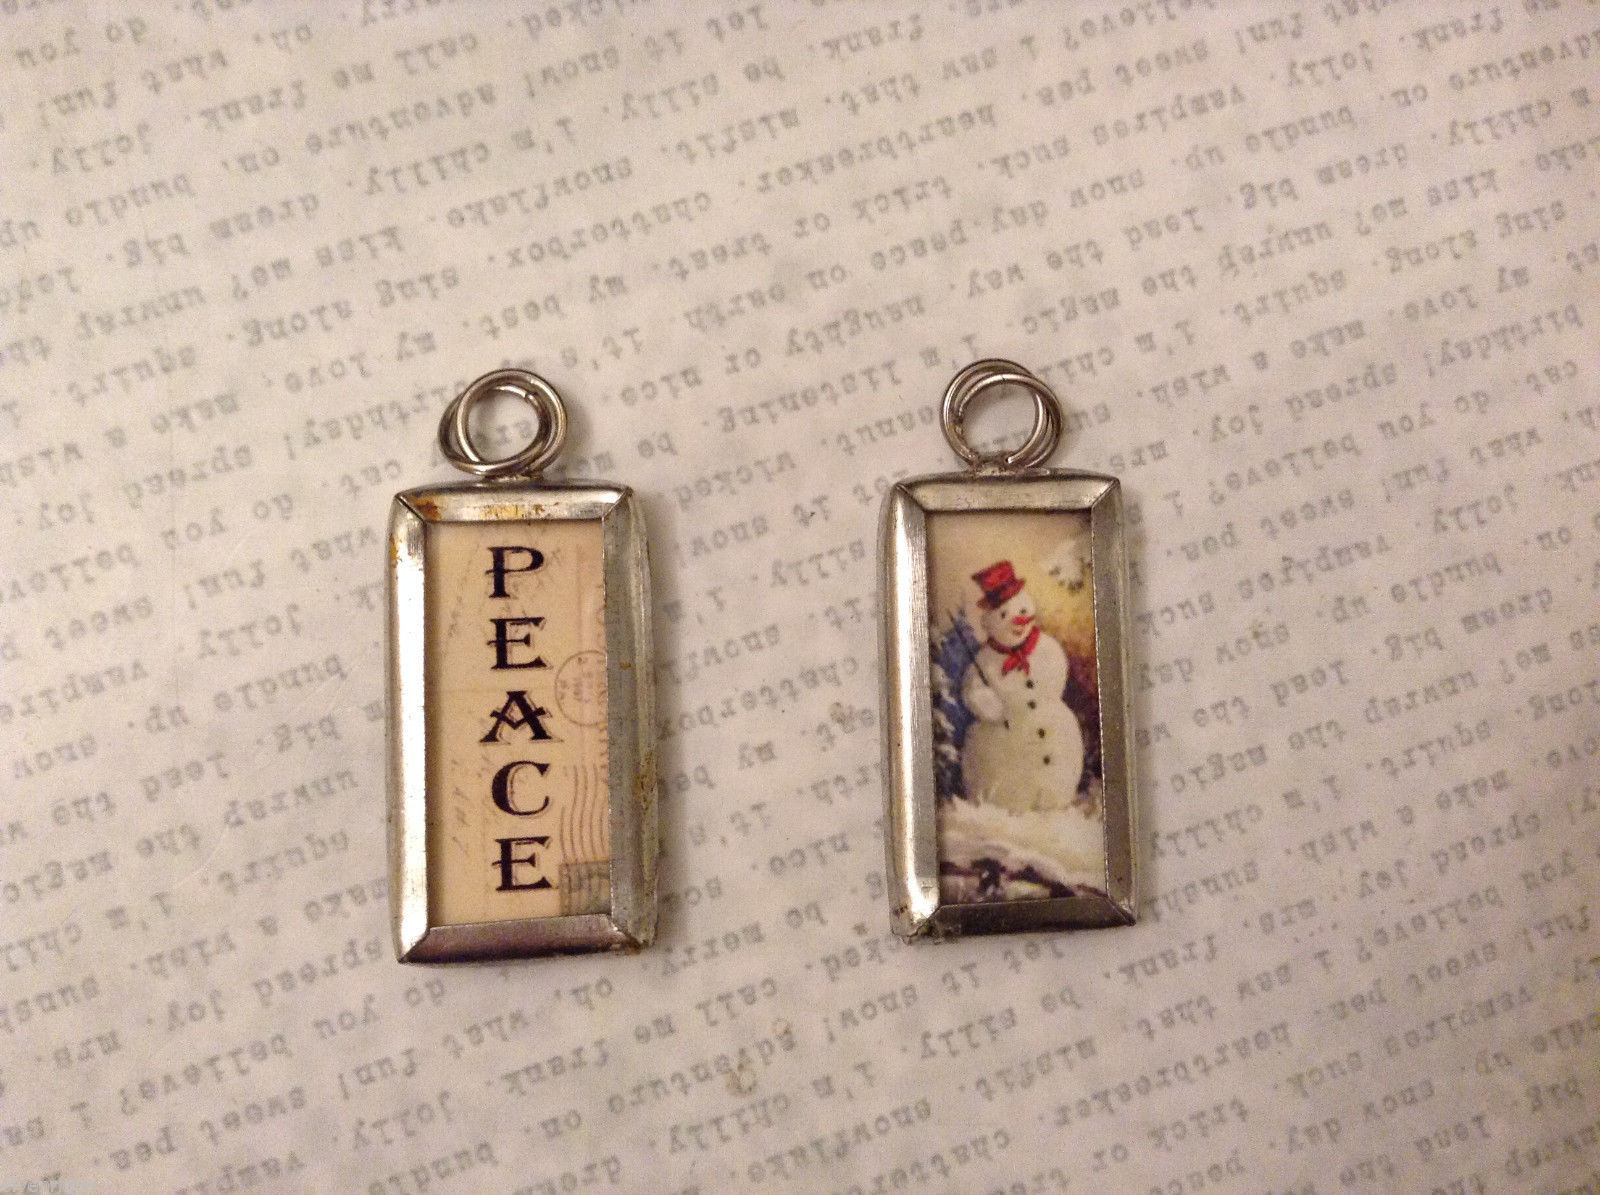 2 sided charm tag in metal frame vintage style - Peace / Snowman